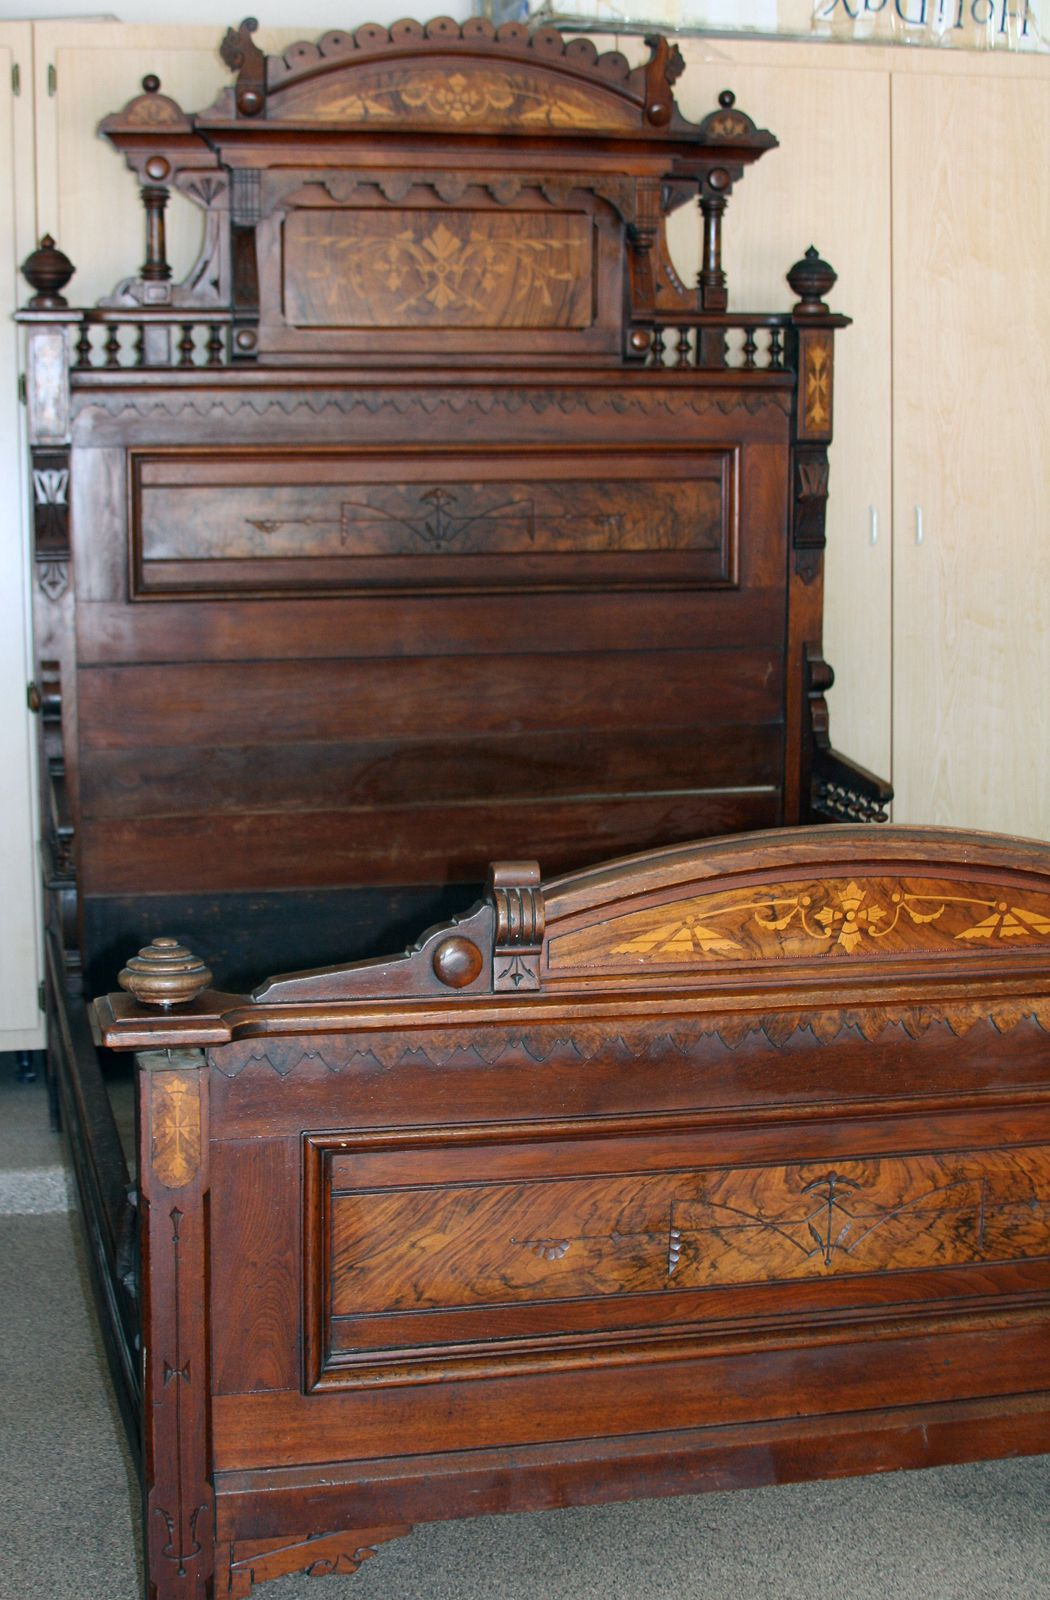 ANTIQUE BED EASTLAKE STYLE WALNUT w/burl inlays 1800's w/VANITY DRESSER SET  | eBay - ANTIQUE BED EASTLAKE STYLE WALNUT W/burl Inlays 1800's W/VANITY